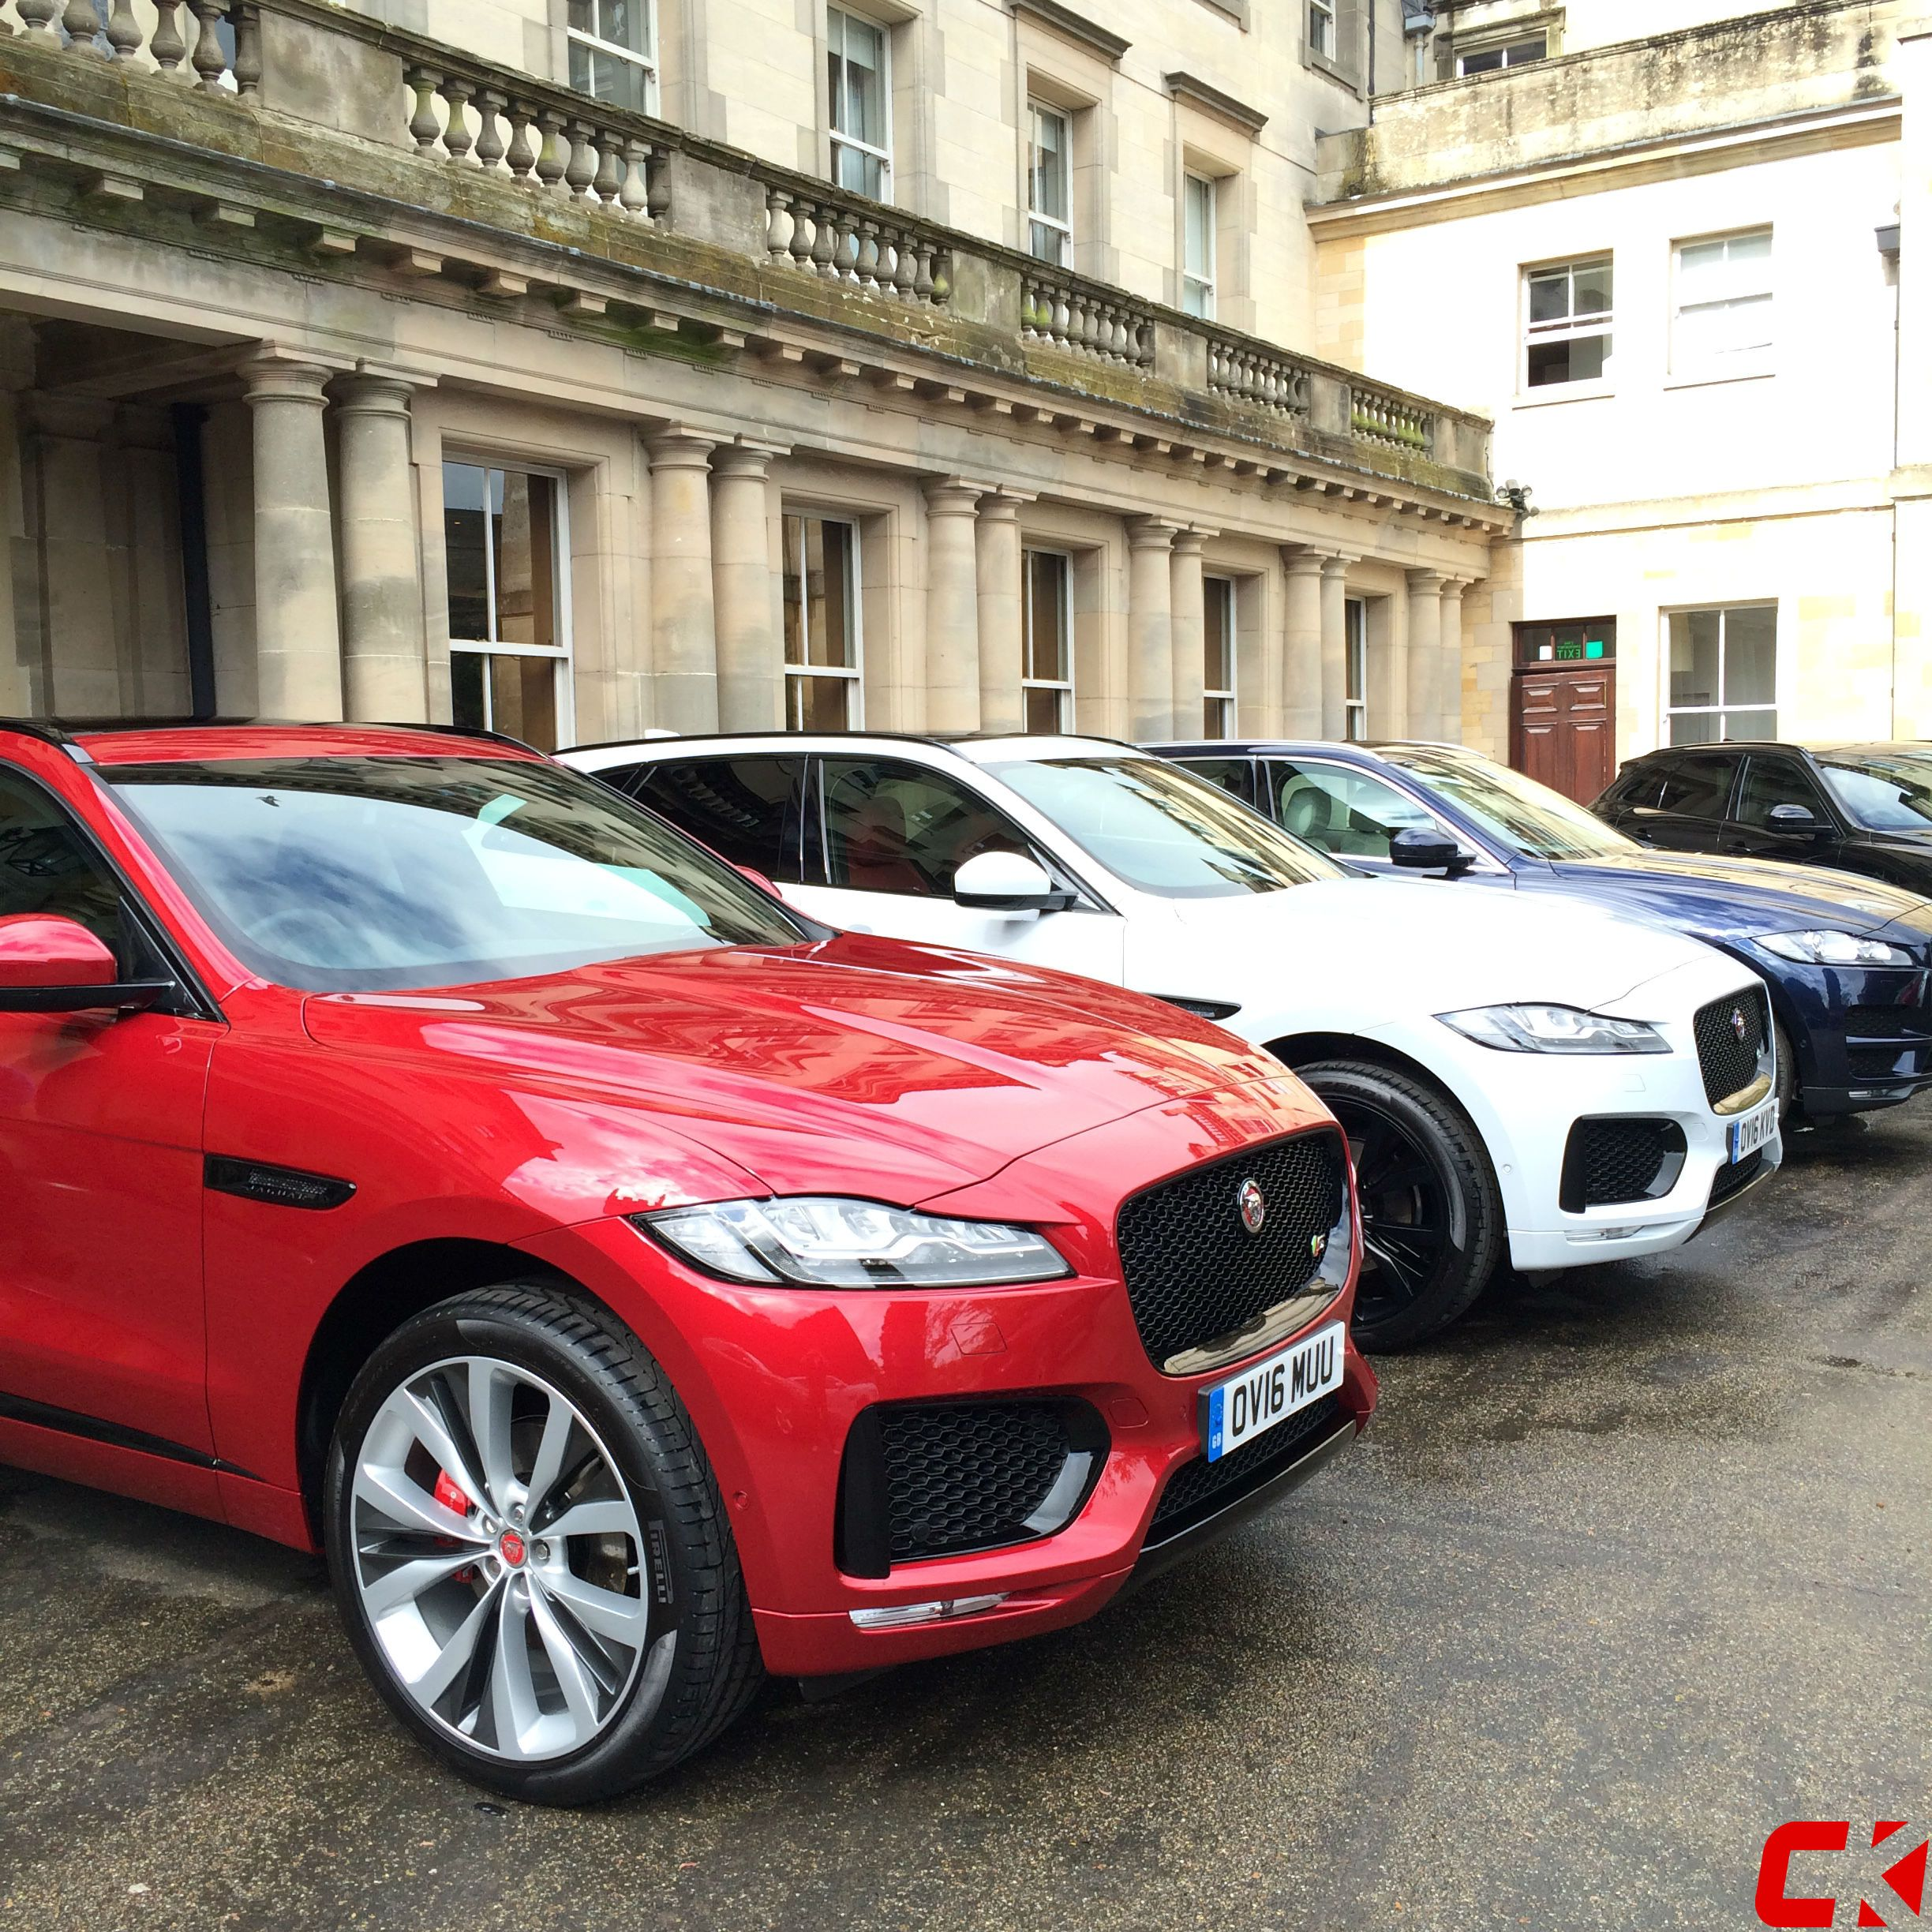 a auto road electric all jaguar model for suv rover plans new line has land international show called york